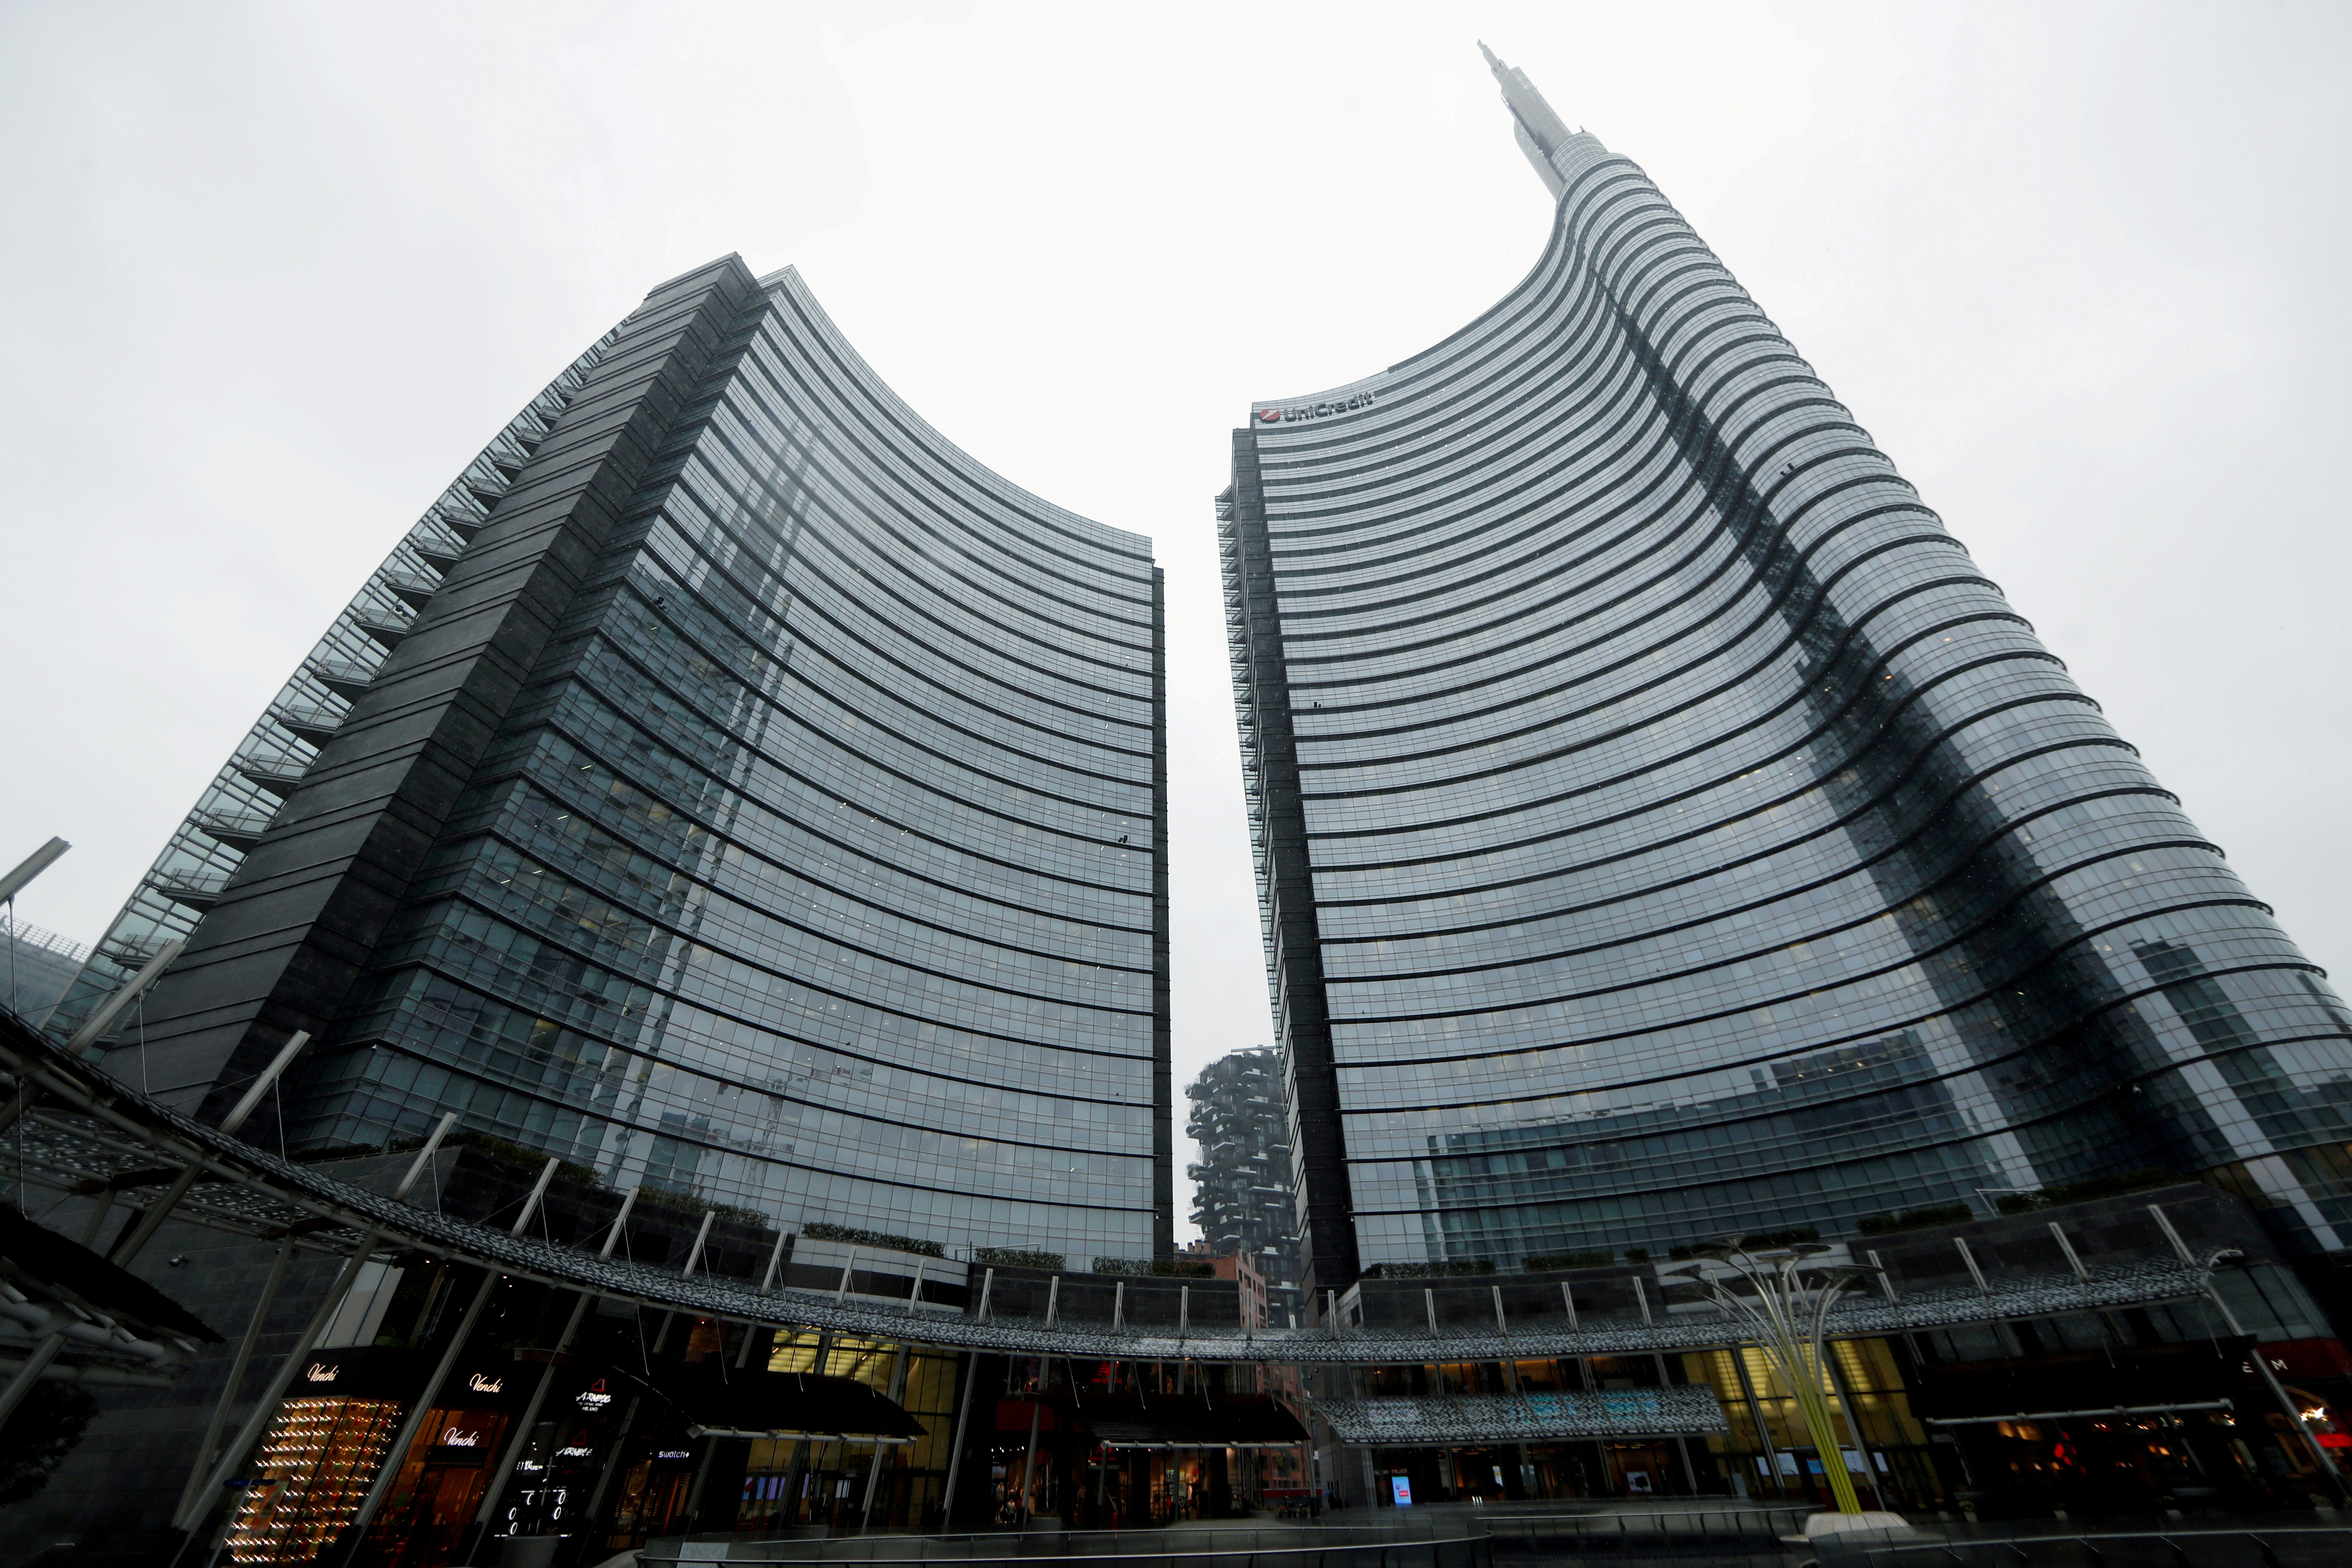 A view of the UniCredit headquarters in Milan, Italy March 2, 2020. REUTERS/Yara Nardi